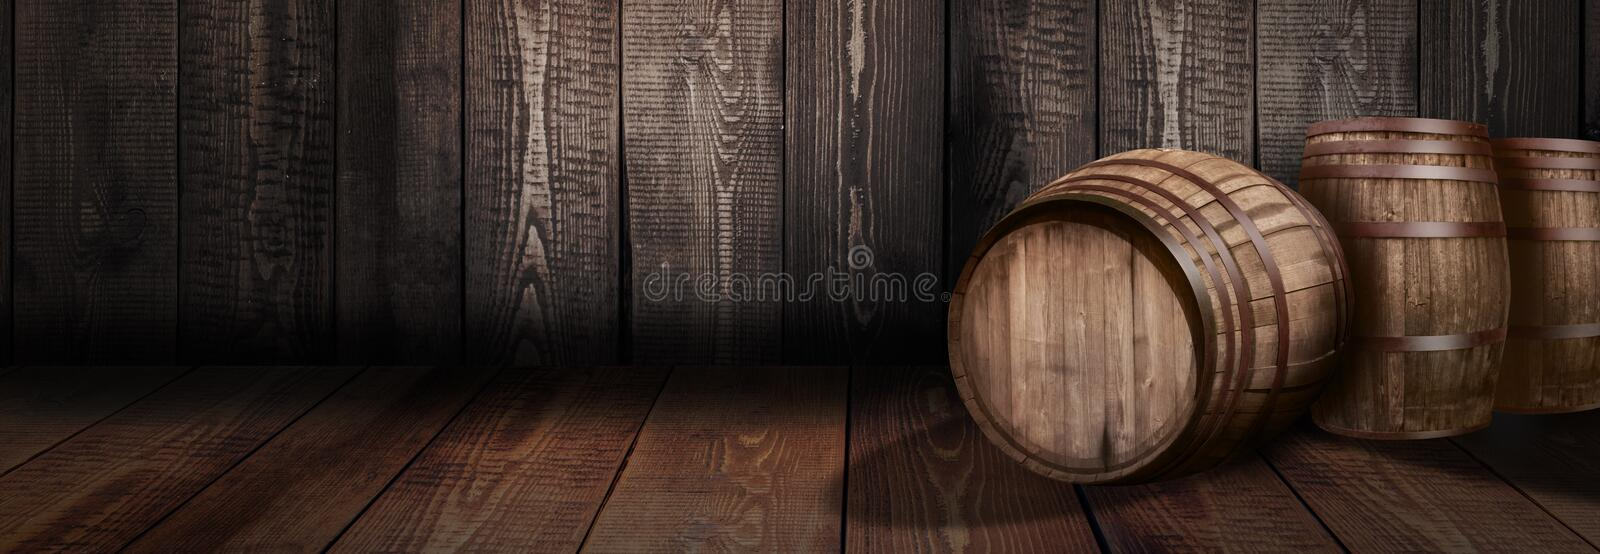 Download Background Of Barrel Whiskey Winery Beer Stock Photo - Image: 90149886